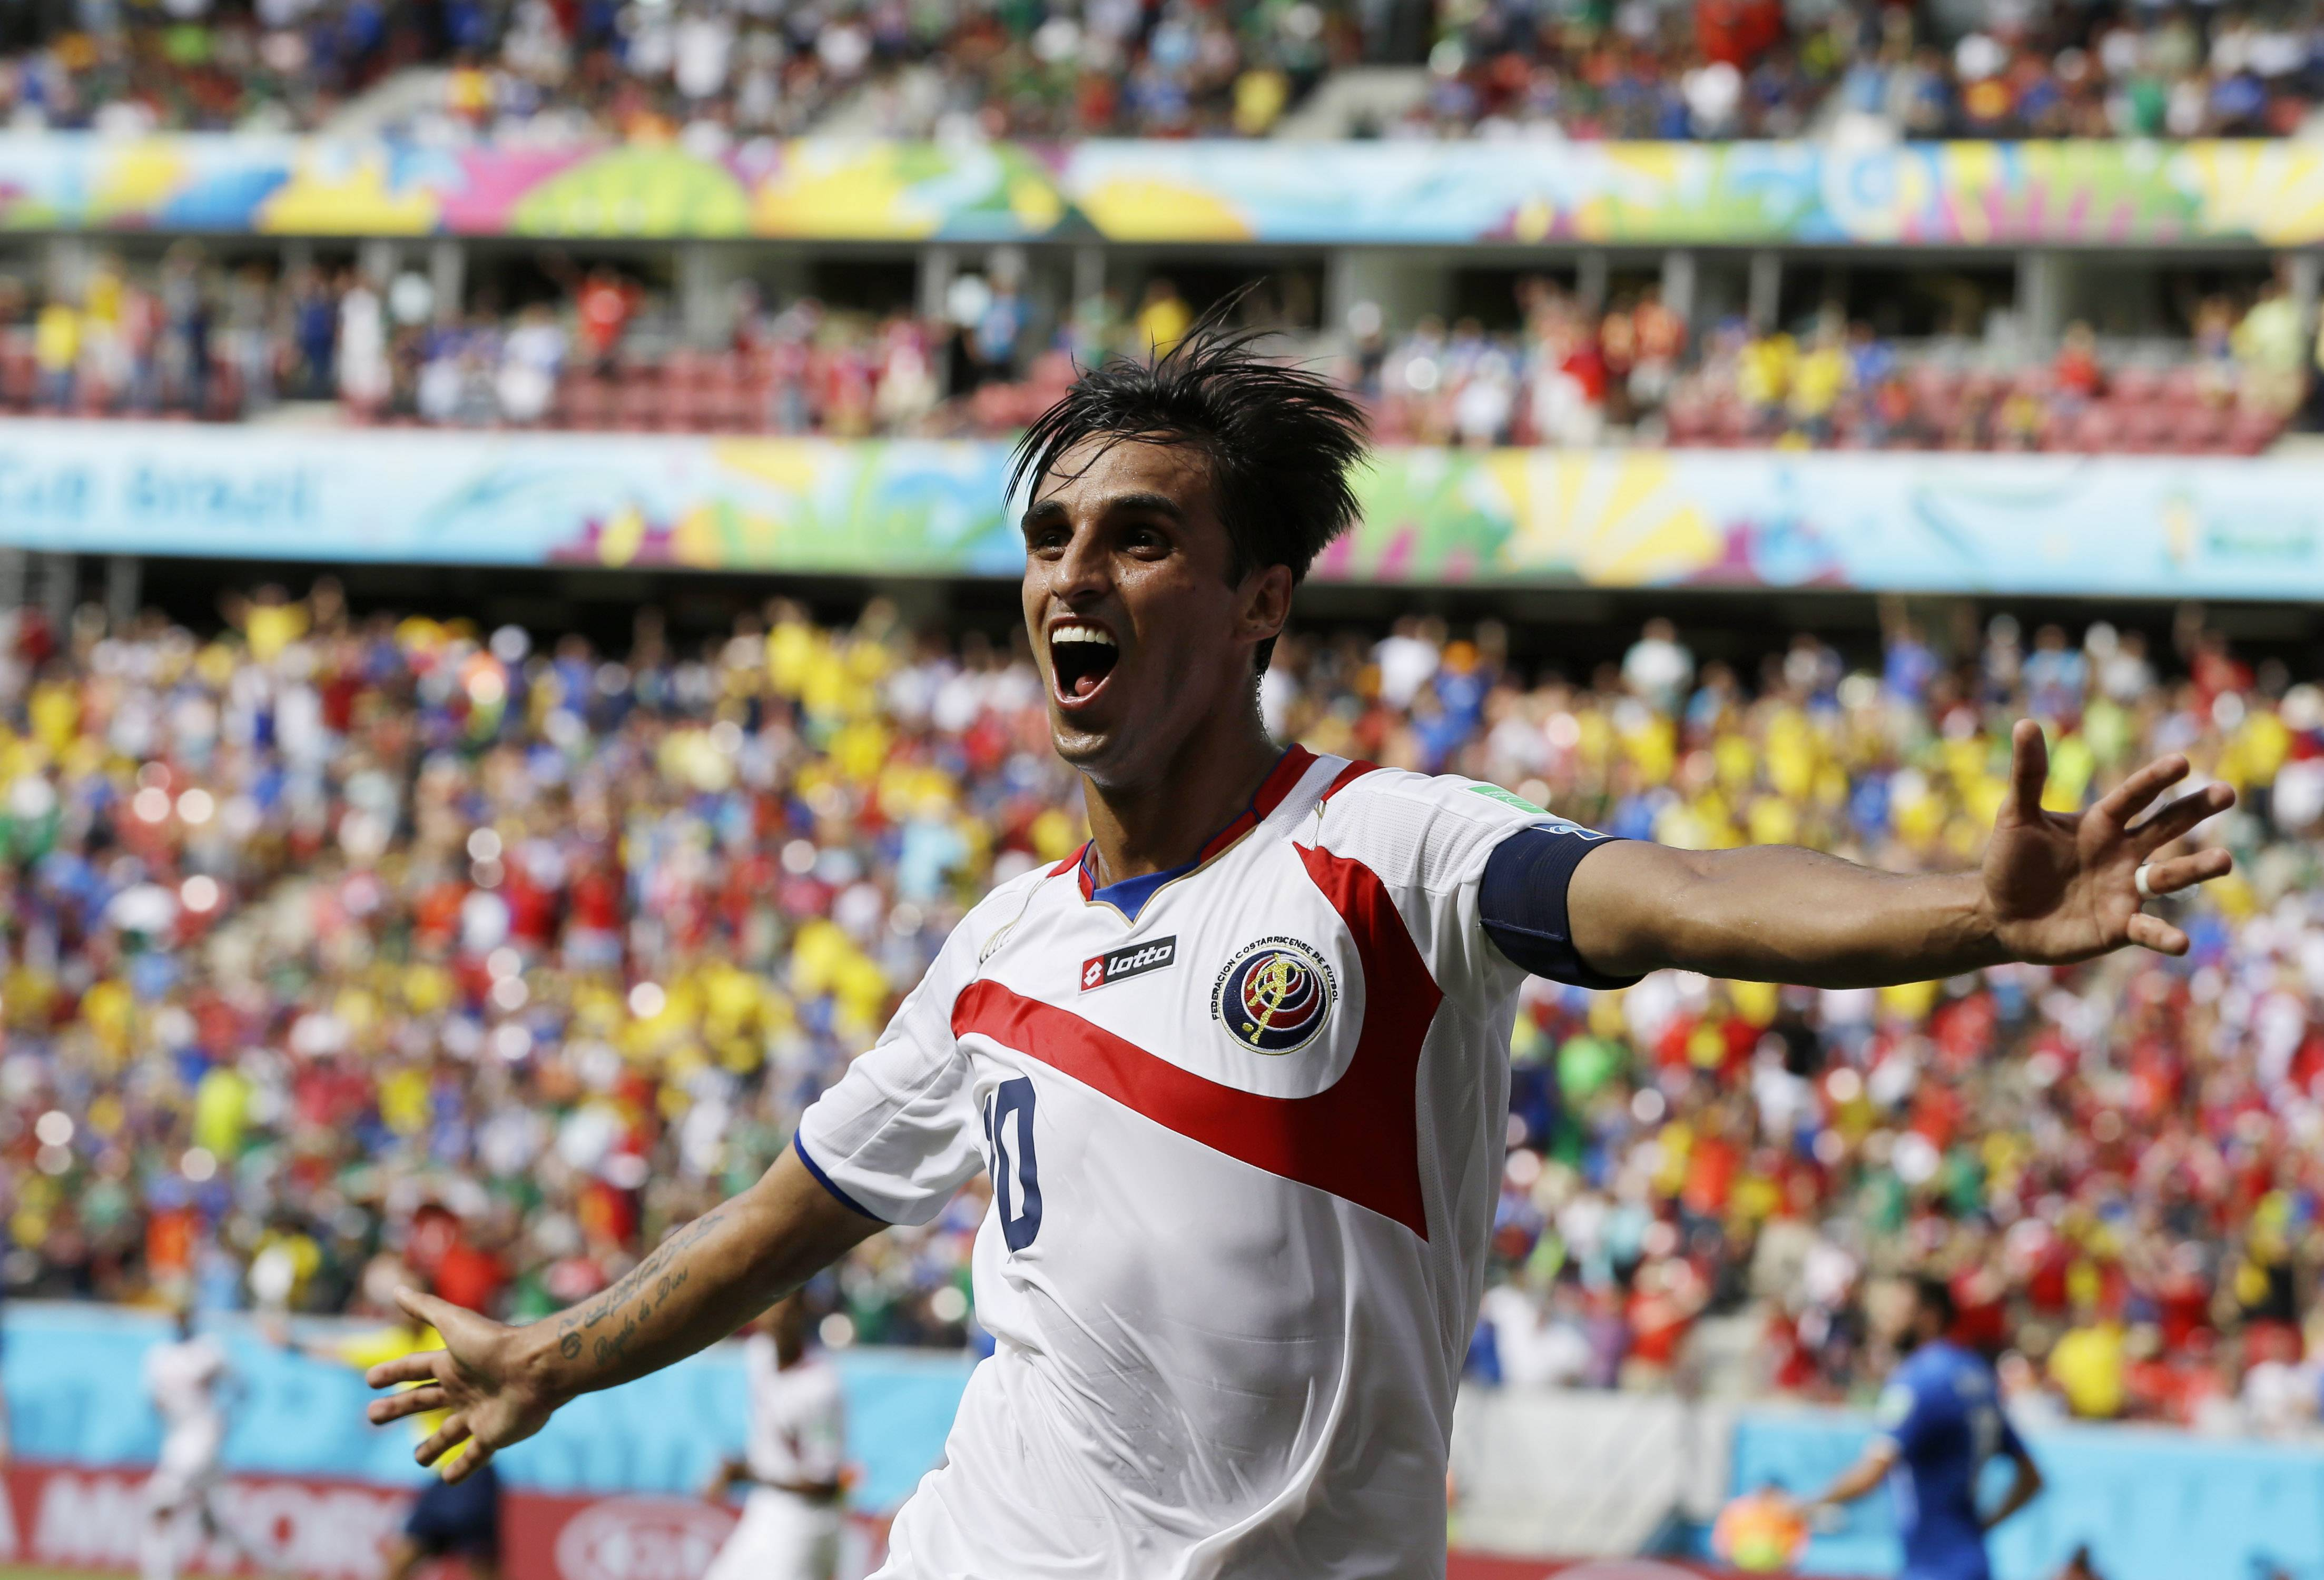 Costa Rica's Bryan Ruiz celebrates after scoring his side's first goal over Italy's goalkeeper Gianluigi Buffon during the group D World Cup soccer match between Italy and Costa Rica at the Arena Pernambuco in Recife, Brazil, Friday, June 20, 2014. (AP Photo/Ricardo Mazalan)